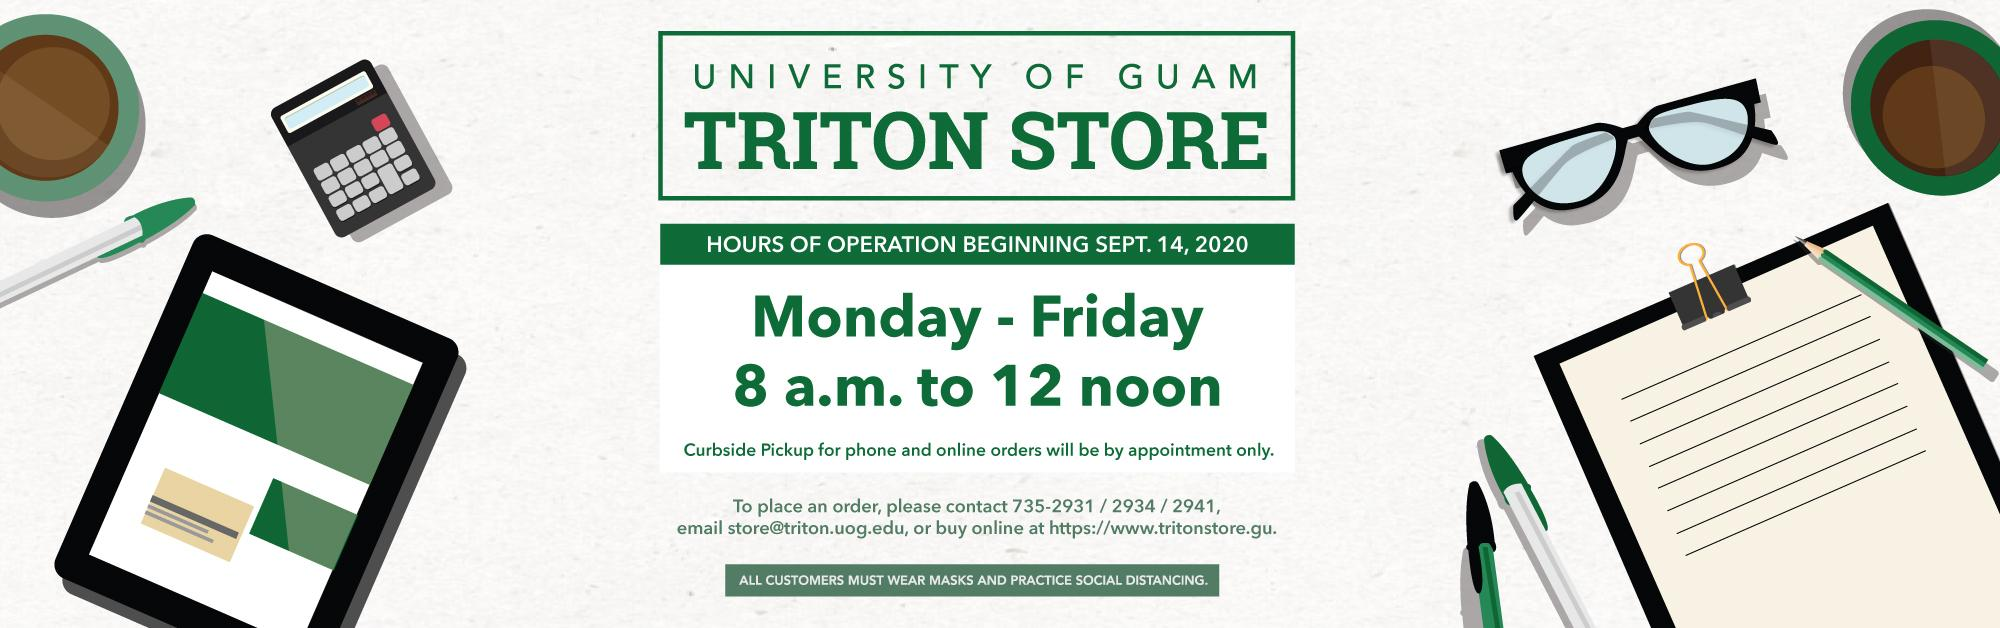 UOG Triton Store | Curbside pick-up available